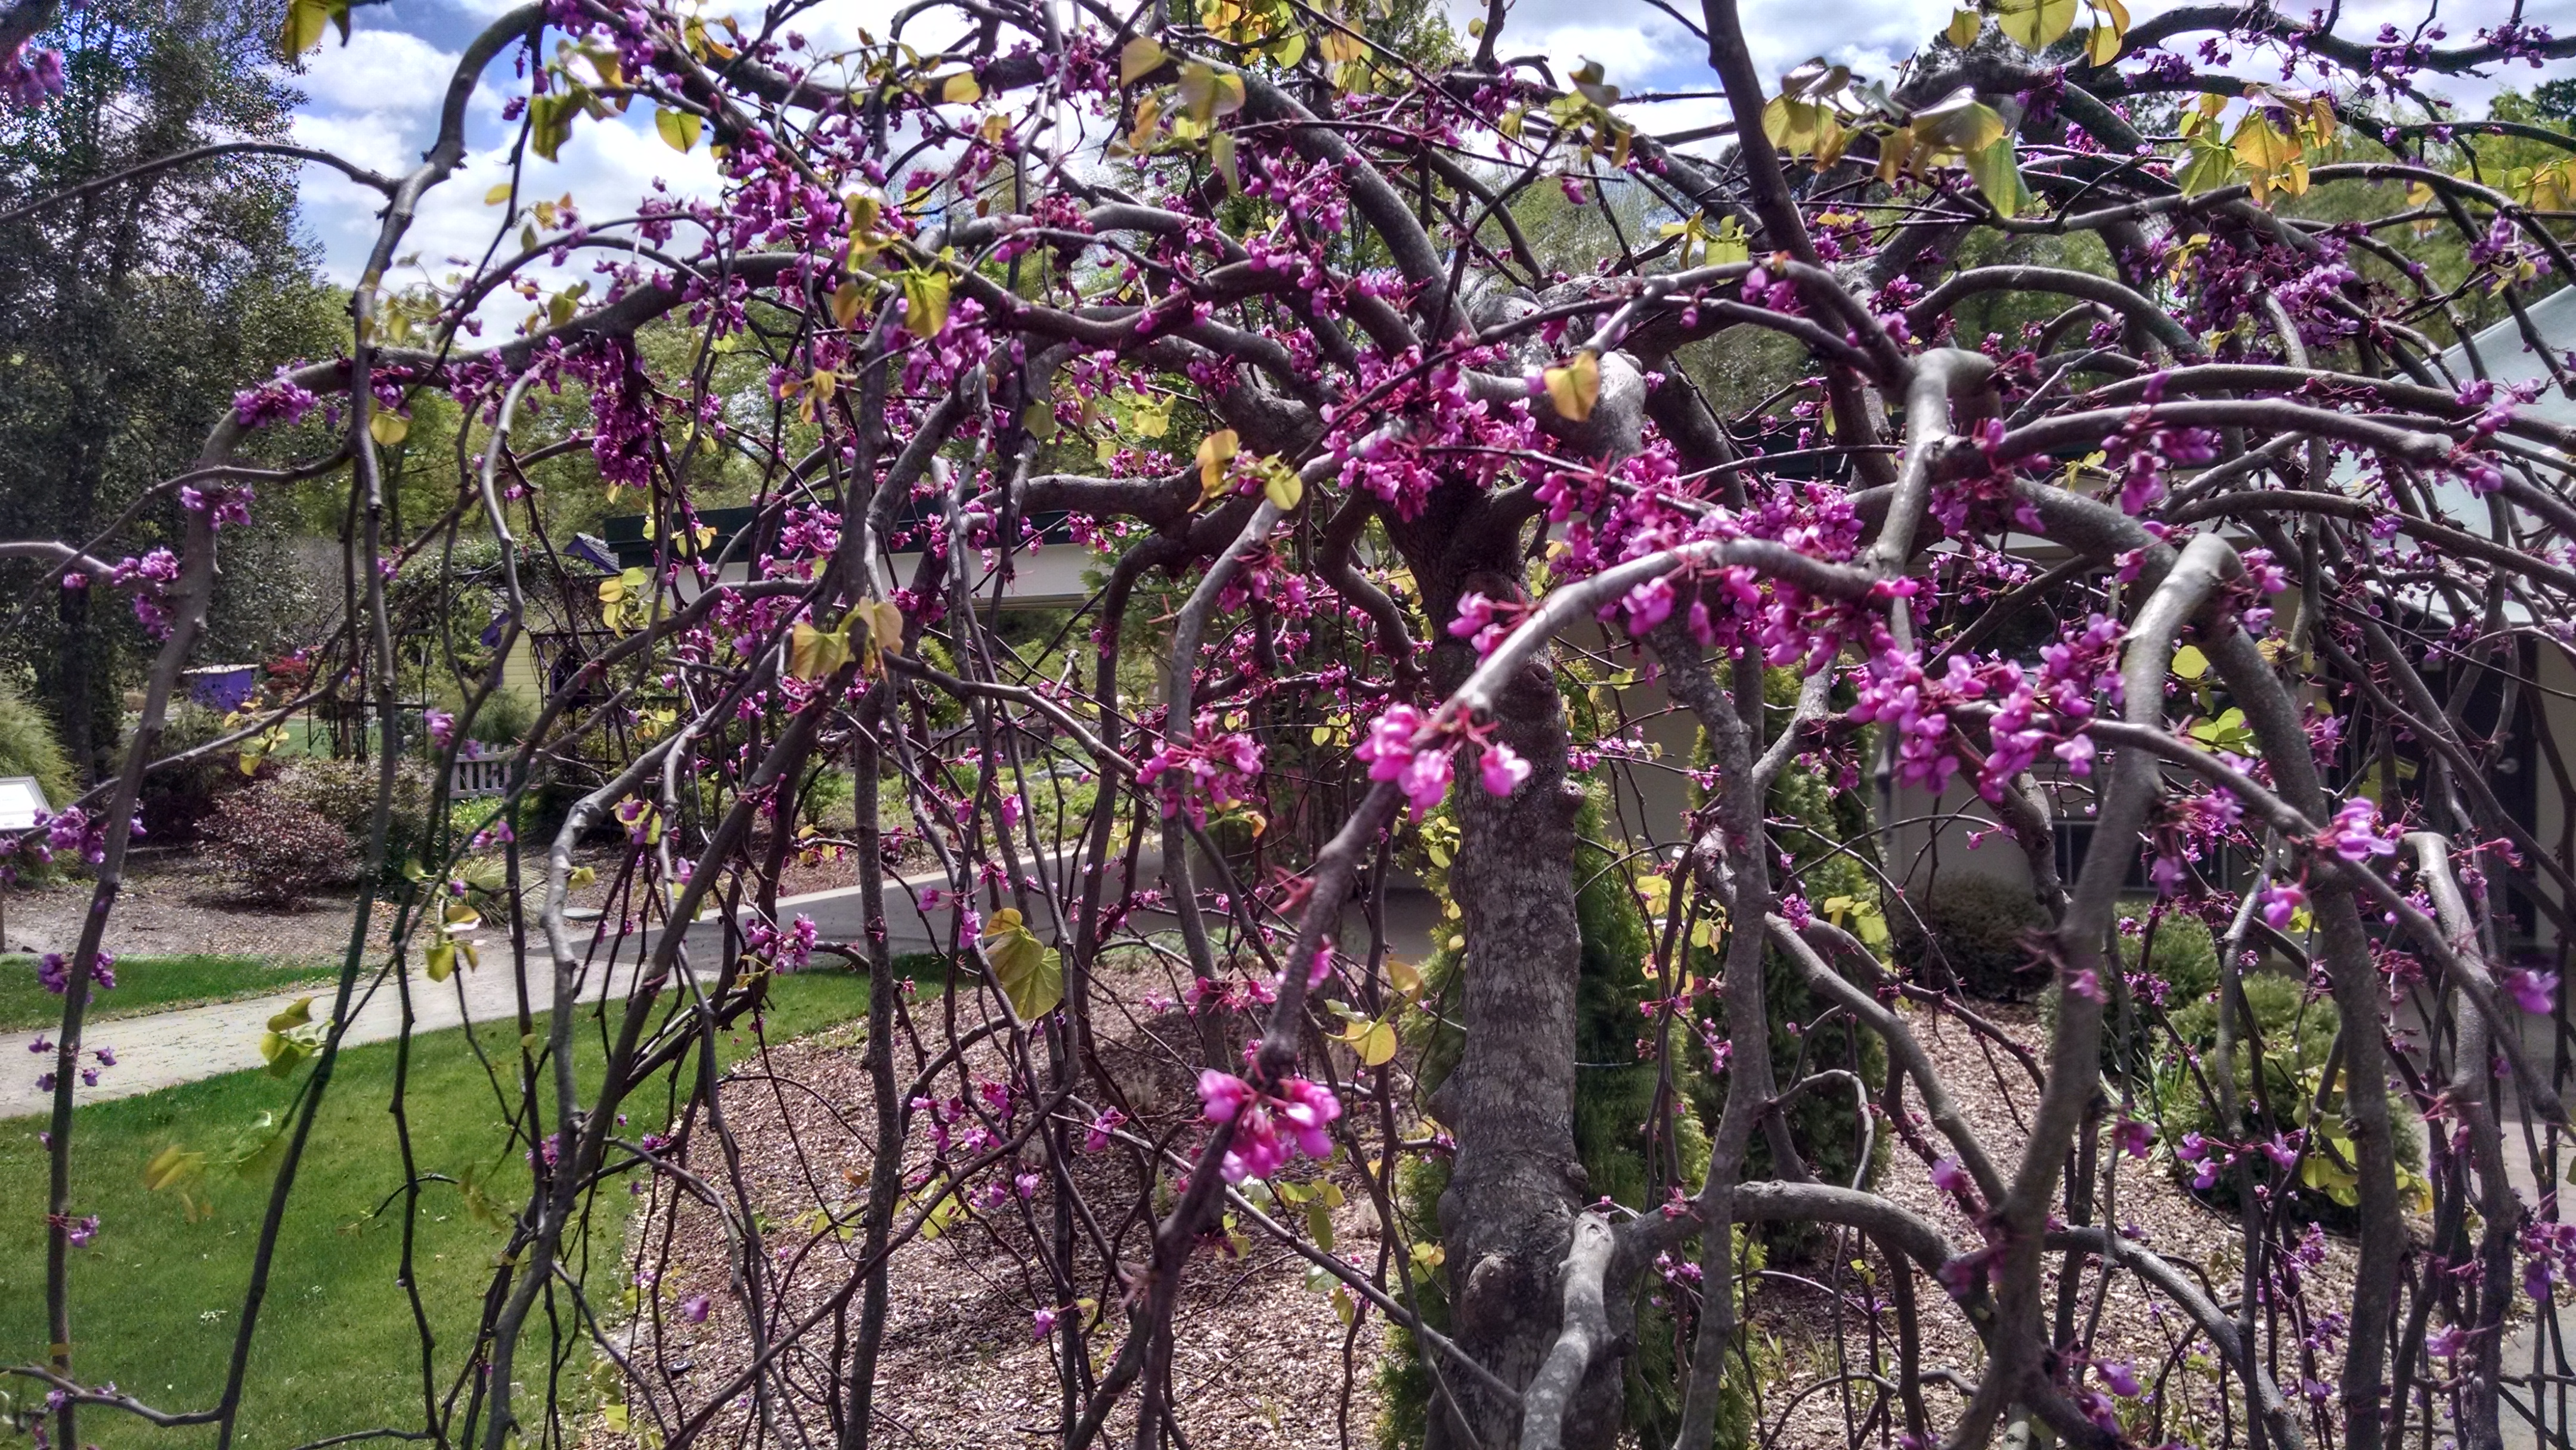 Innovative With Its Purple New Growth Is Still Most Purple Last Once Heat Turns But Getting To Know A Native North Carolina Cooperative Extension houzz-02 Rising Sun Redbud